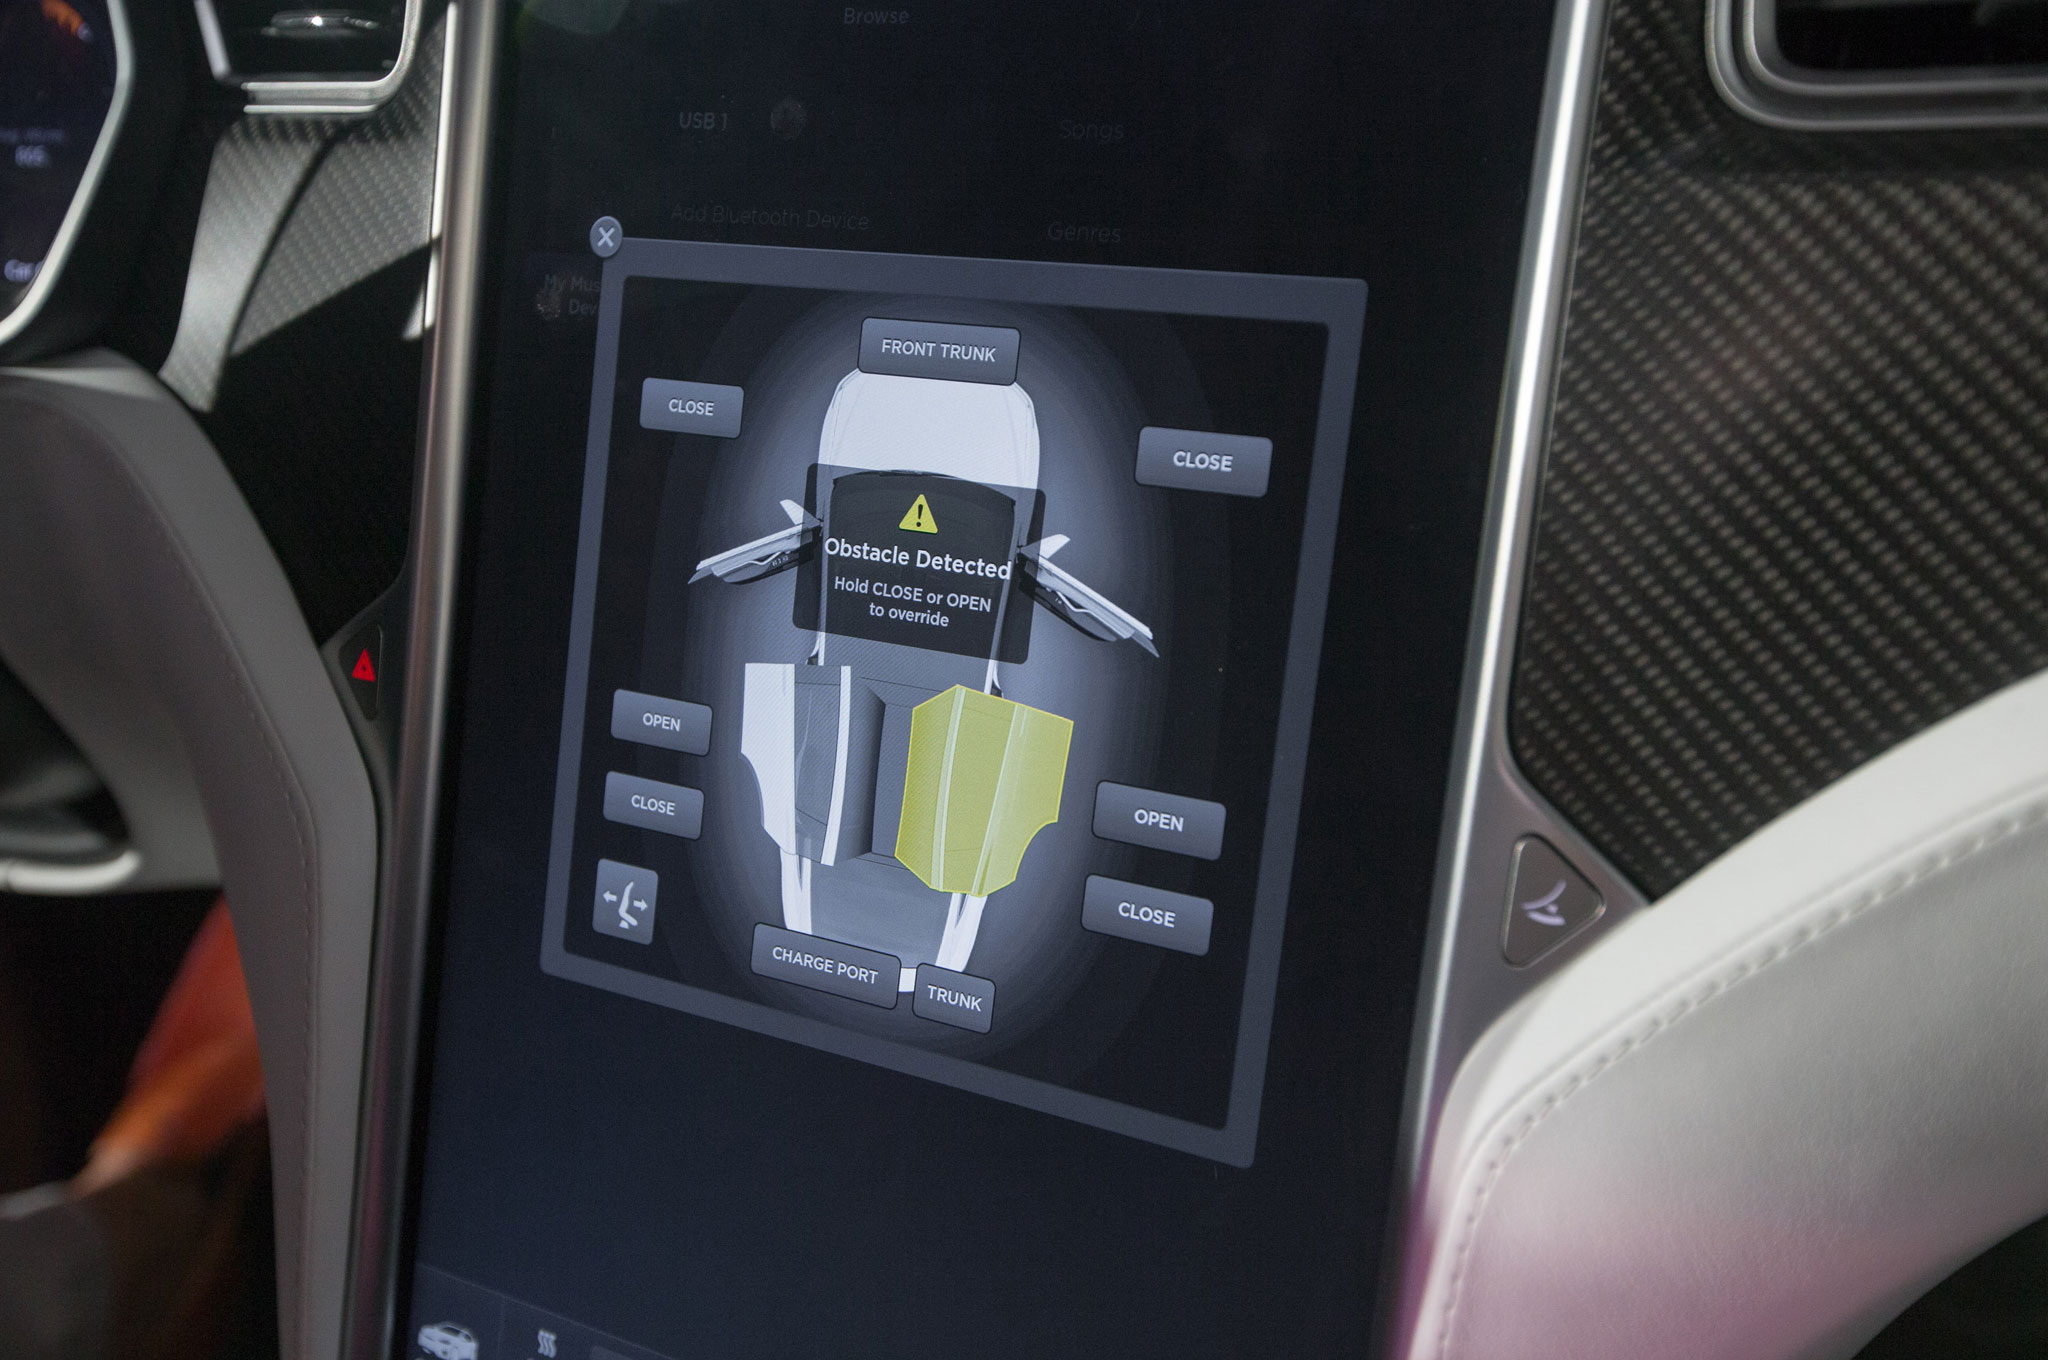 2016-tesla-model-x-interior-screen.jpg